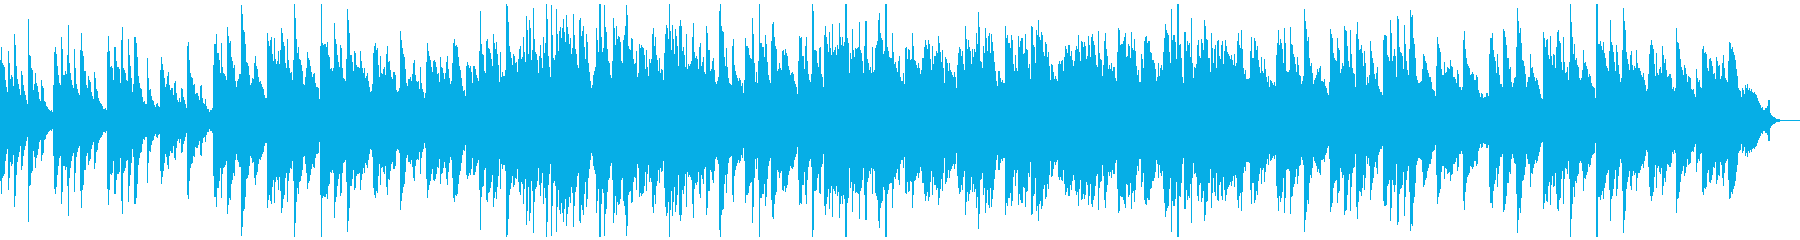 A warm and warm piano song's reproduced waveform